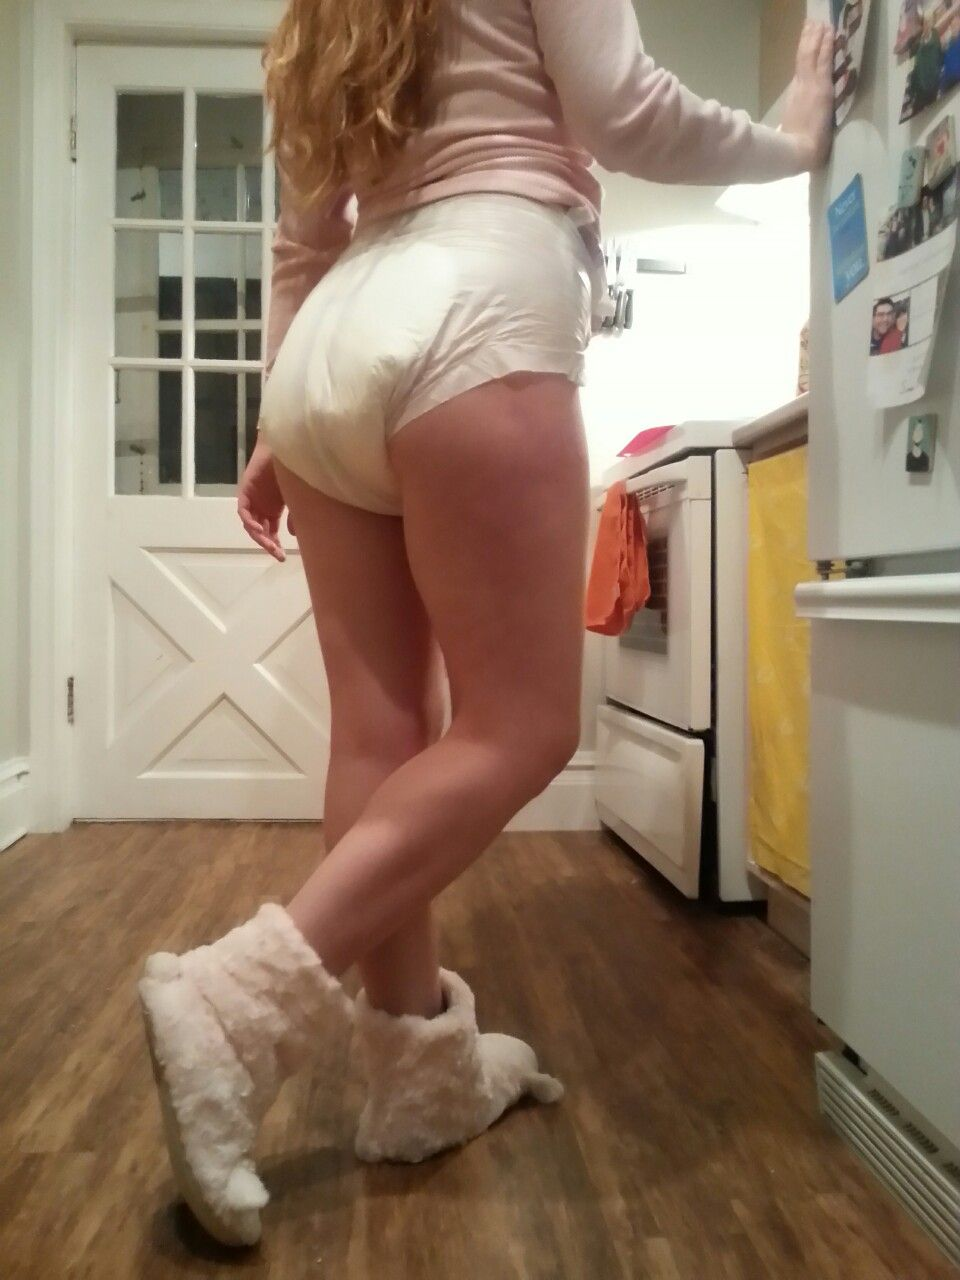 Pathetic Diapered Sissy Photo Things To Wear Scene Girls